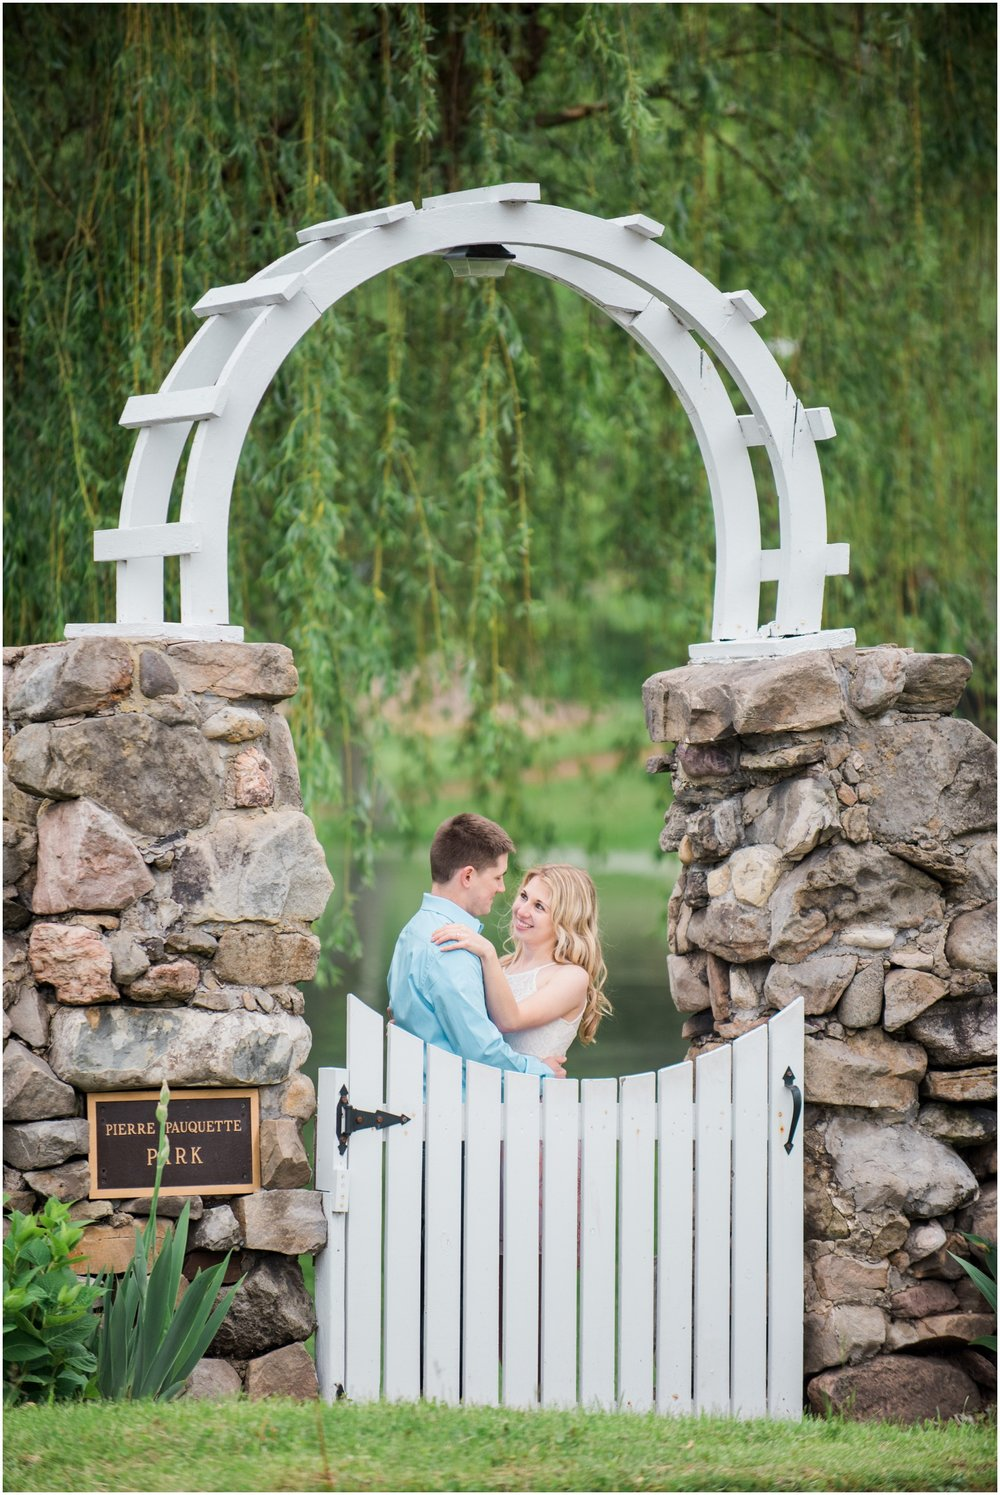 Paquette_Park_Portage_WI_Engagement_Photos_Heather_and_Derek_0020.jpg